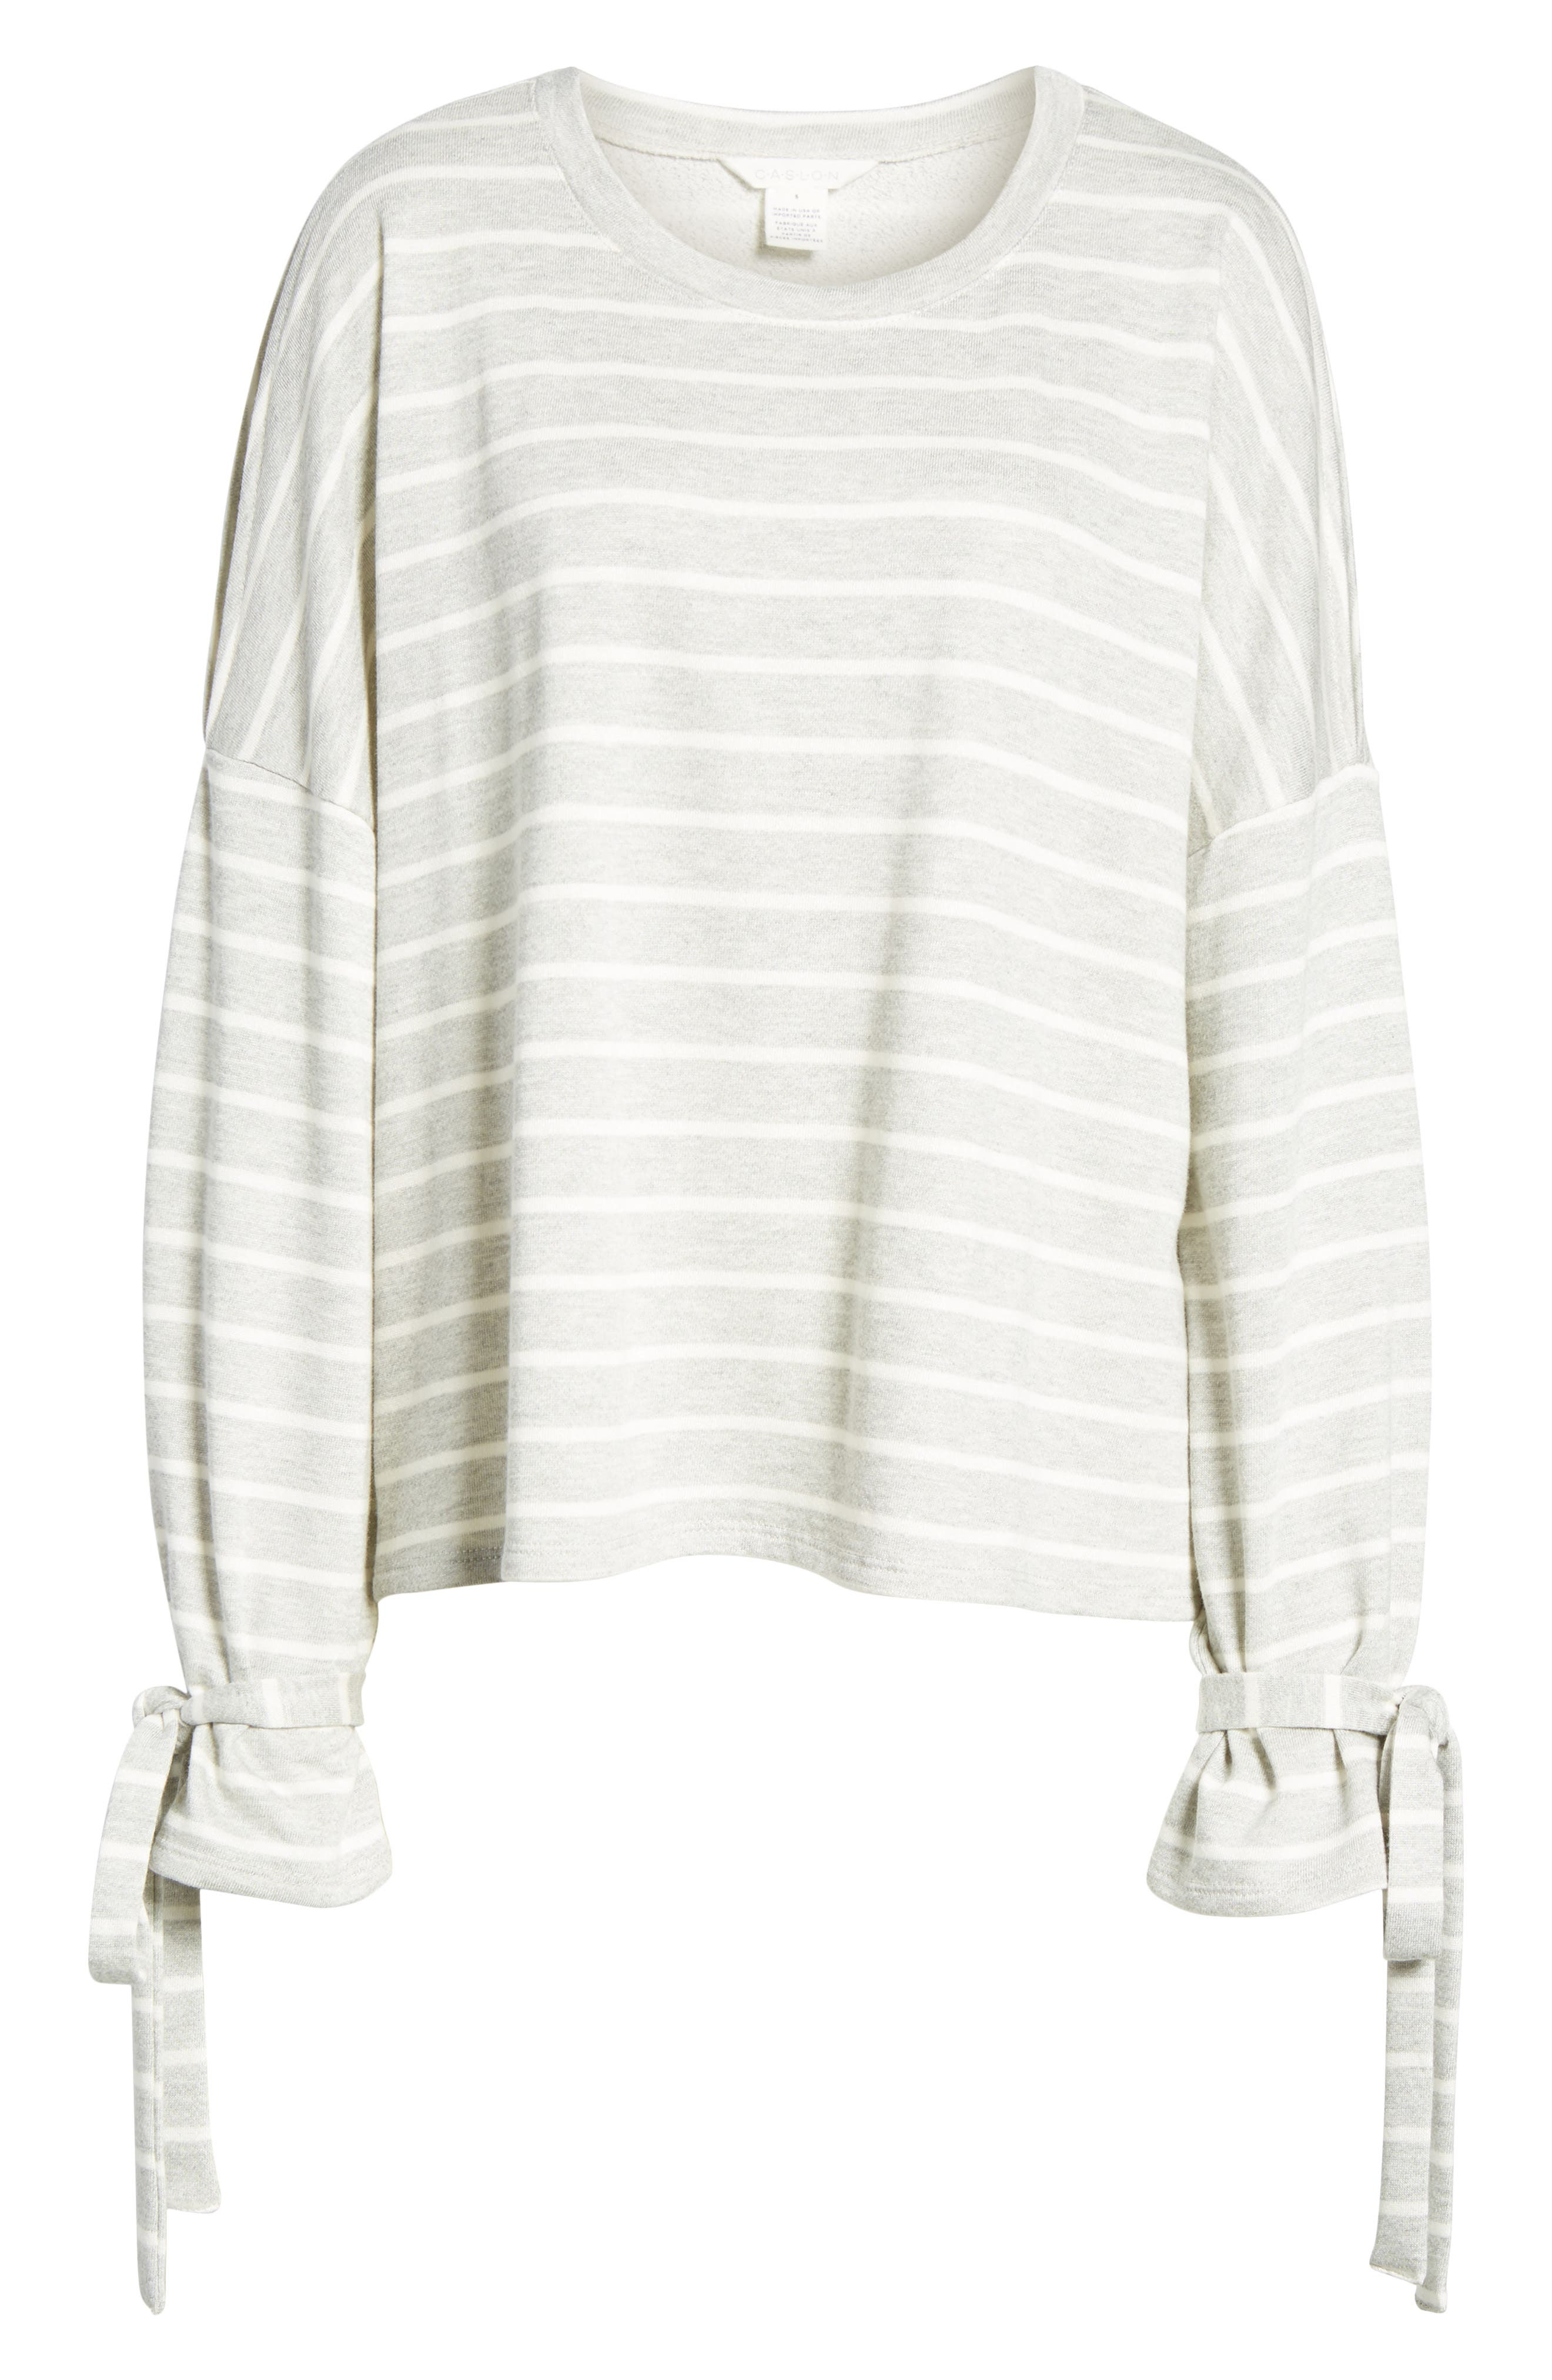 Calson<sup>®</sup> Cold Shoulder Tie Sleeve Tee,                             Alternate thumbnail 6, color,                             030